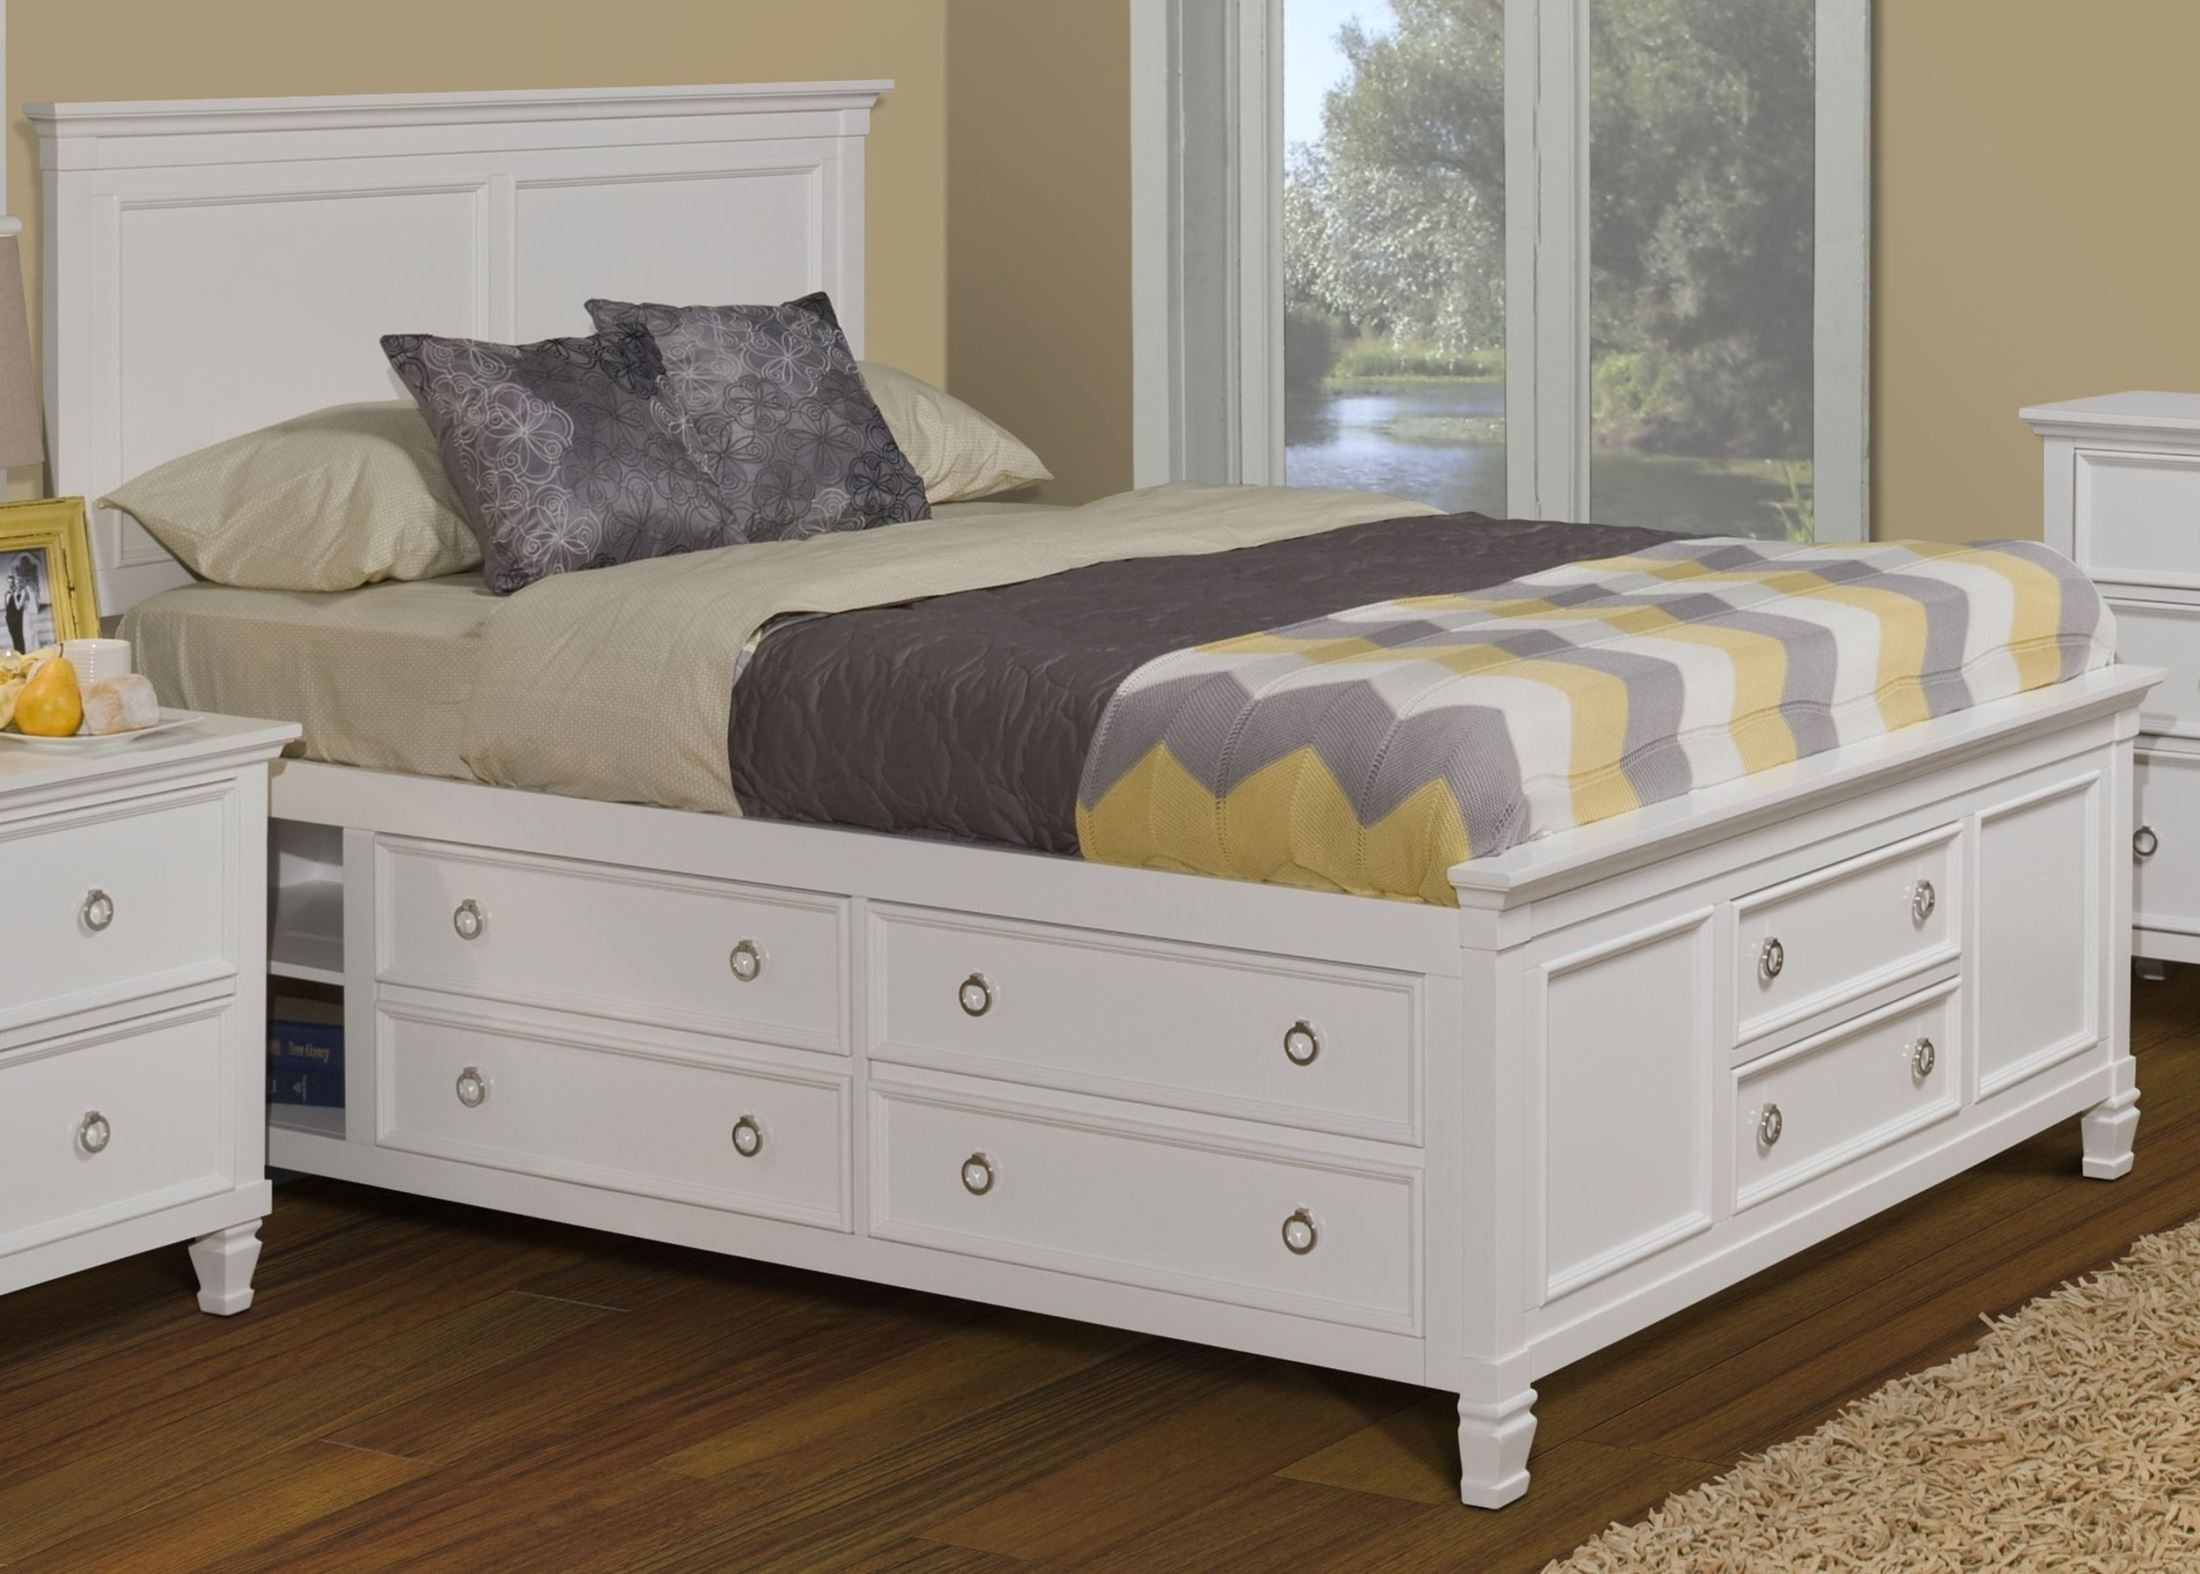 Tamarack white queen platform storage bed from new - Best platform beds with storage ...